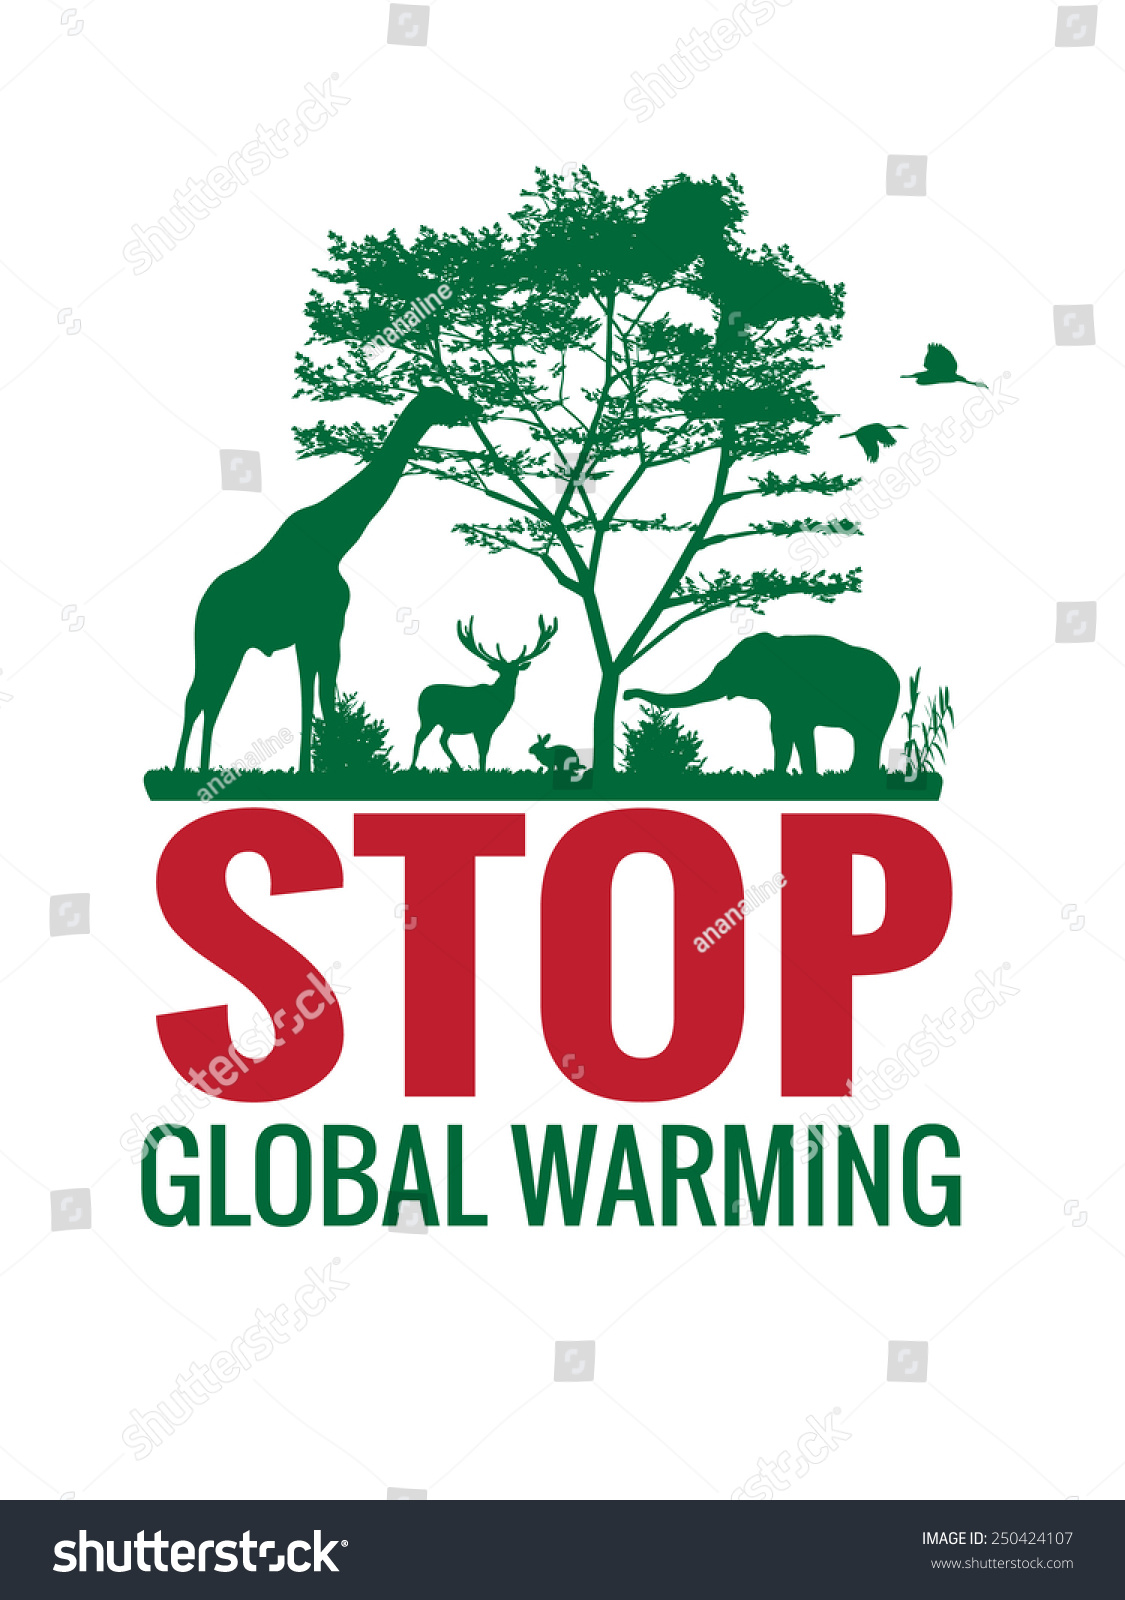 how to stop global warming in canada